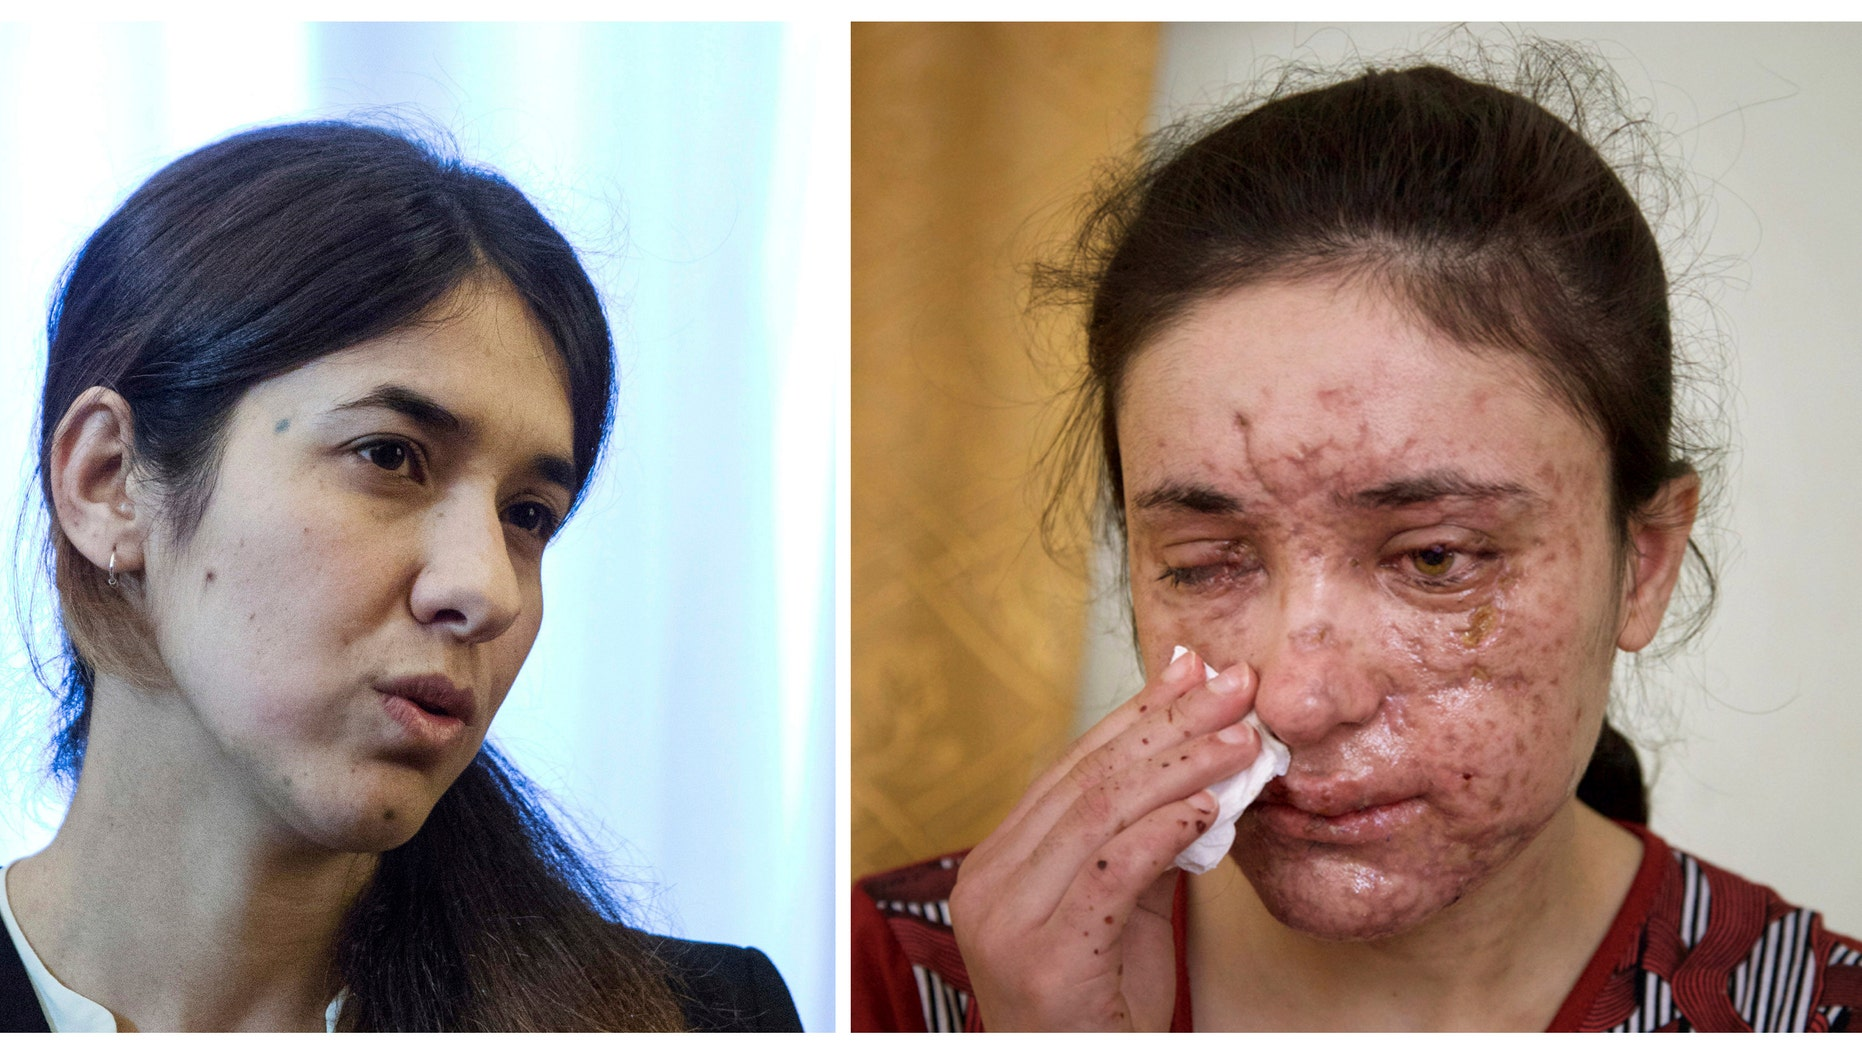 This photo depicts Iraqi Yazidis Nadia Murad Basee, left, and Lamiya Aji Bashar, right, who survived sexual enslavement by the Islamic State group.